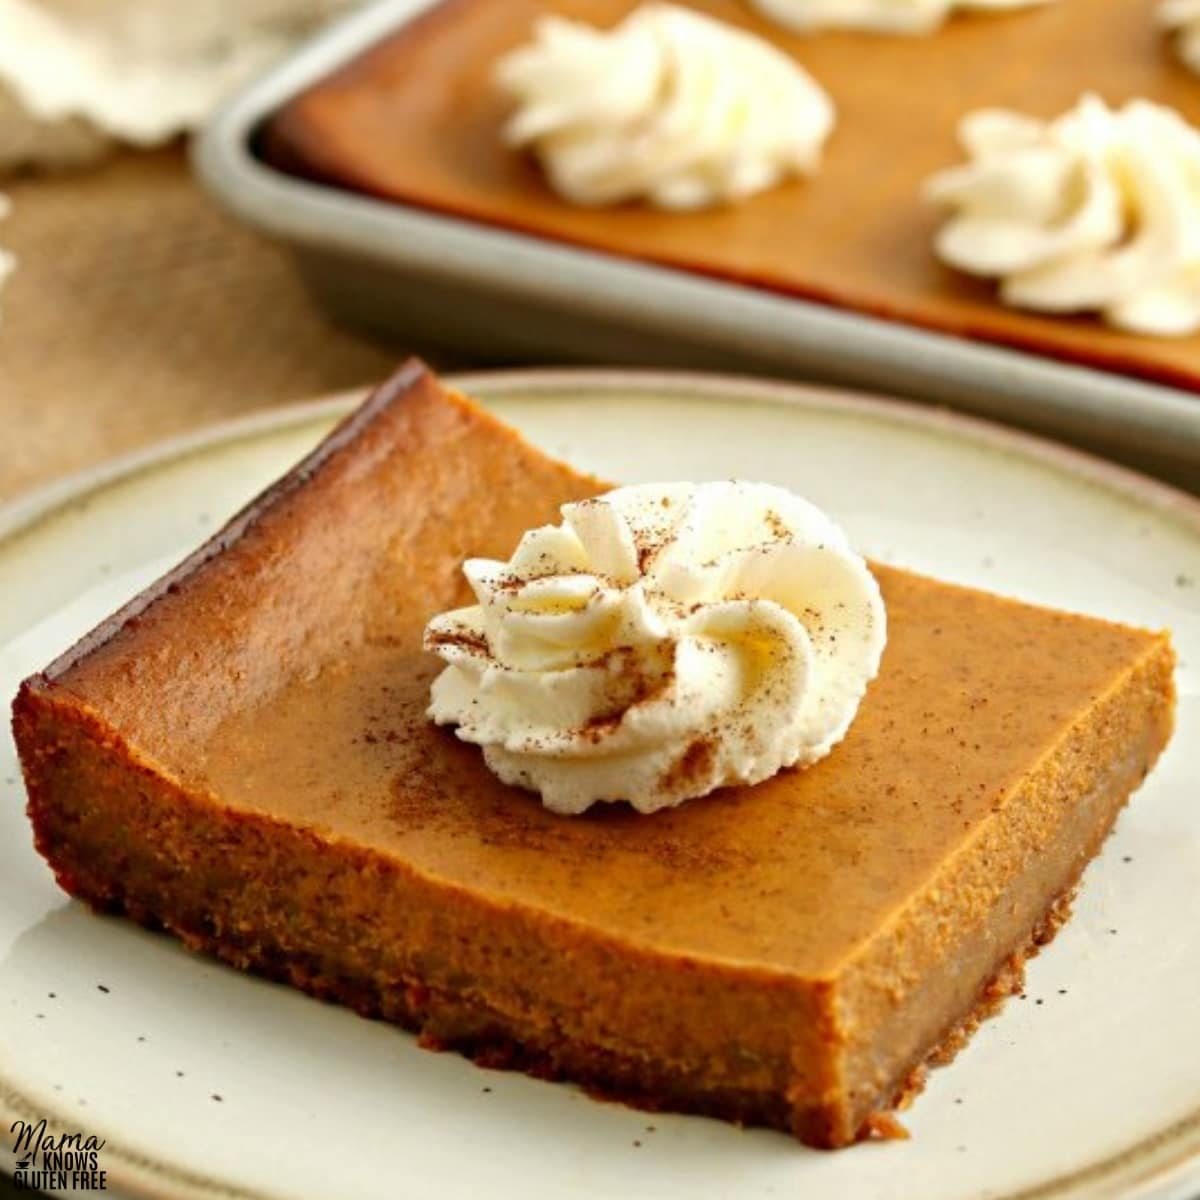 gluten-free pumpkin pie bar slice on a white plate with the bars in the background